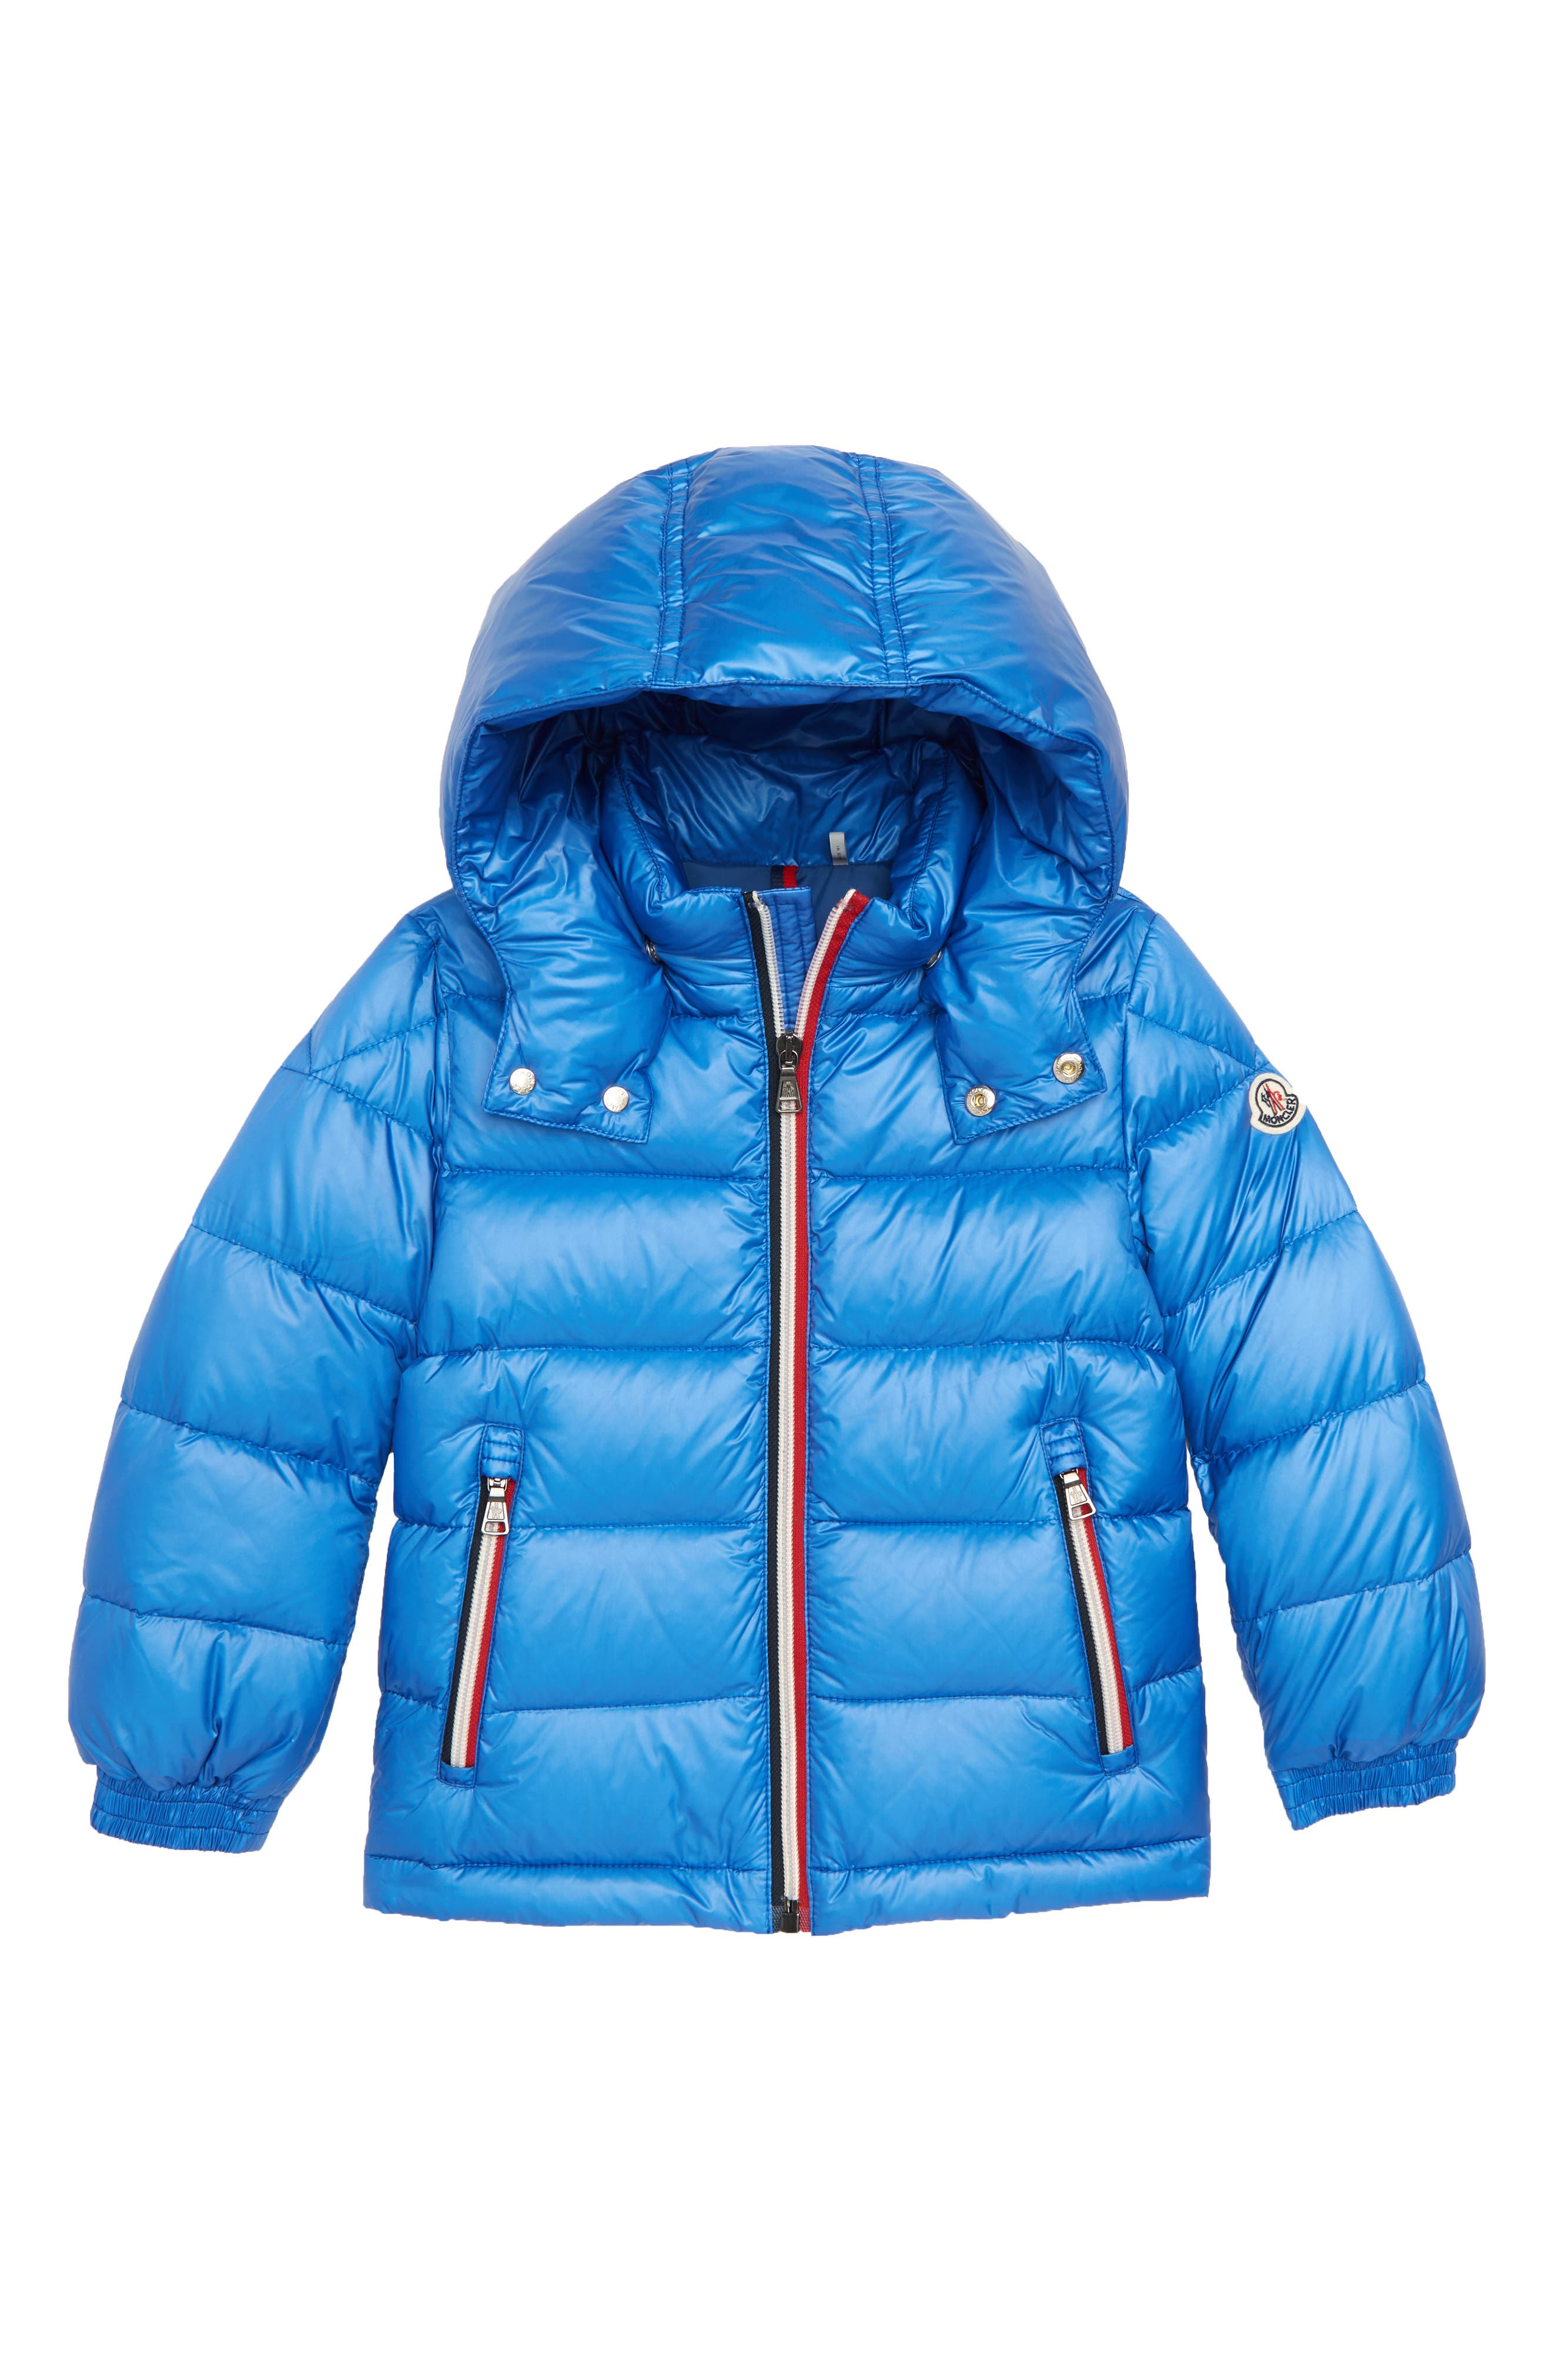 Gastonet Hooded Water Resistant Down Jacket,                             Main thumbnail 1, color,                             BRIGHT BLUE